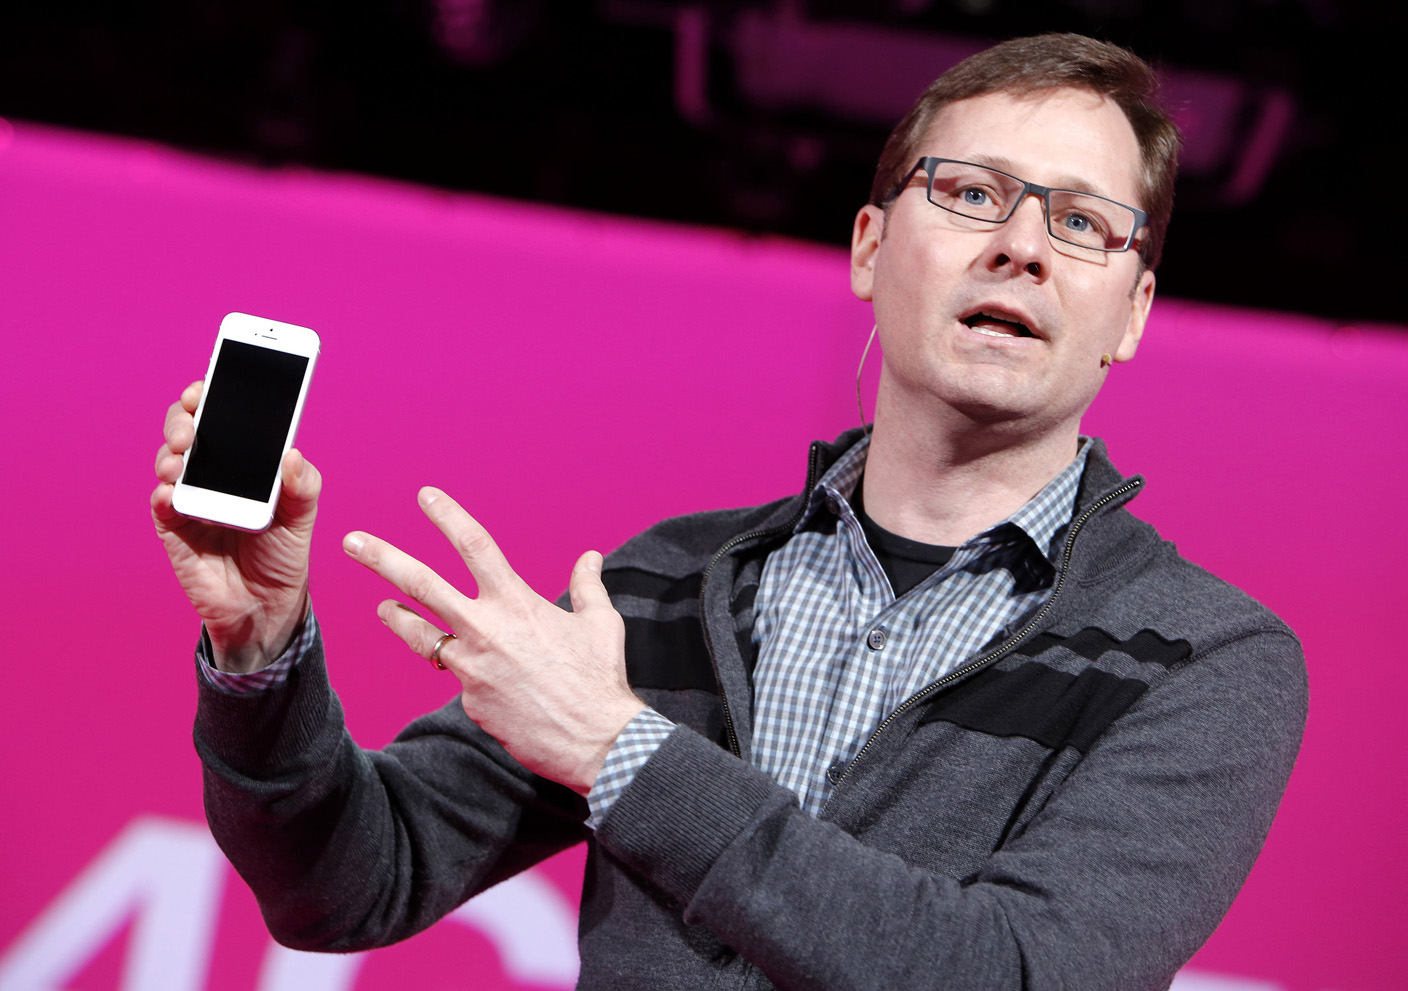 T-Mobile CMO Mike Sievert speaks at a press conference in New York